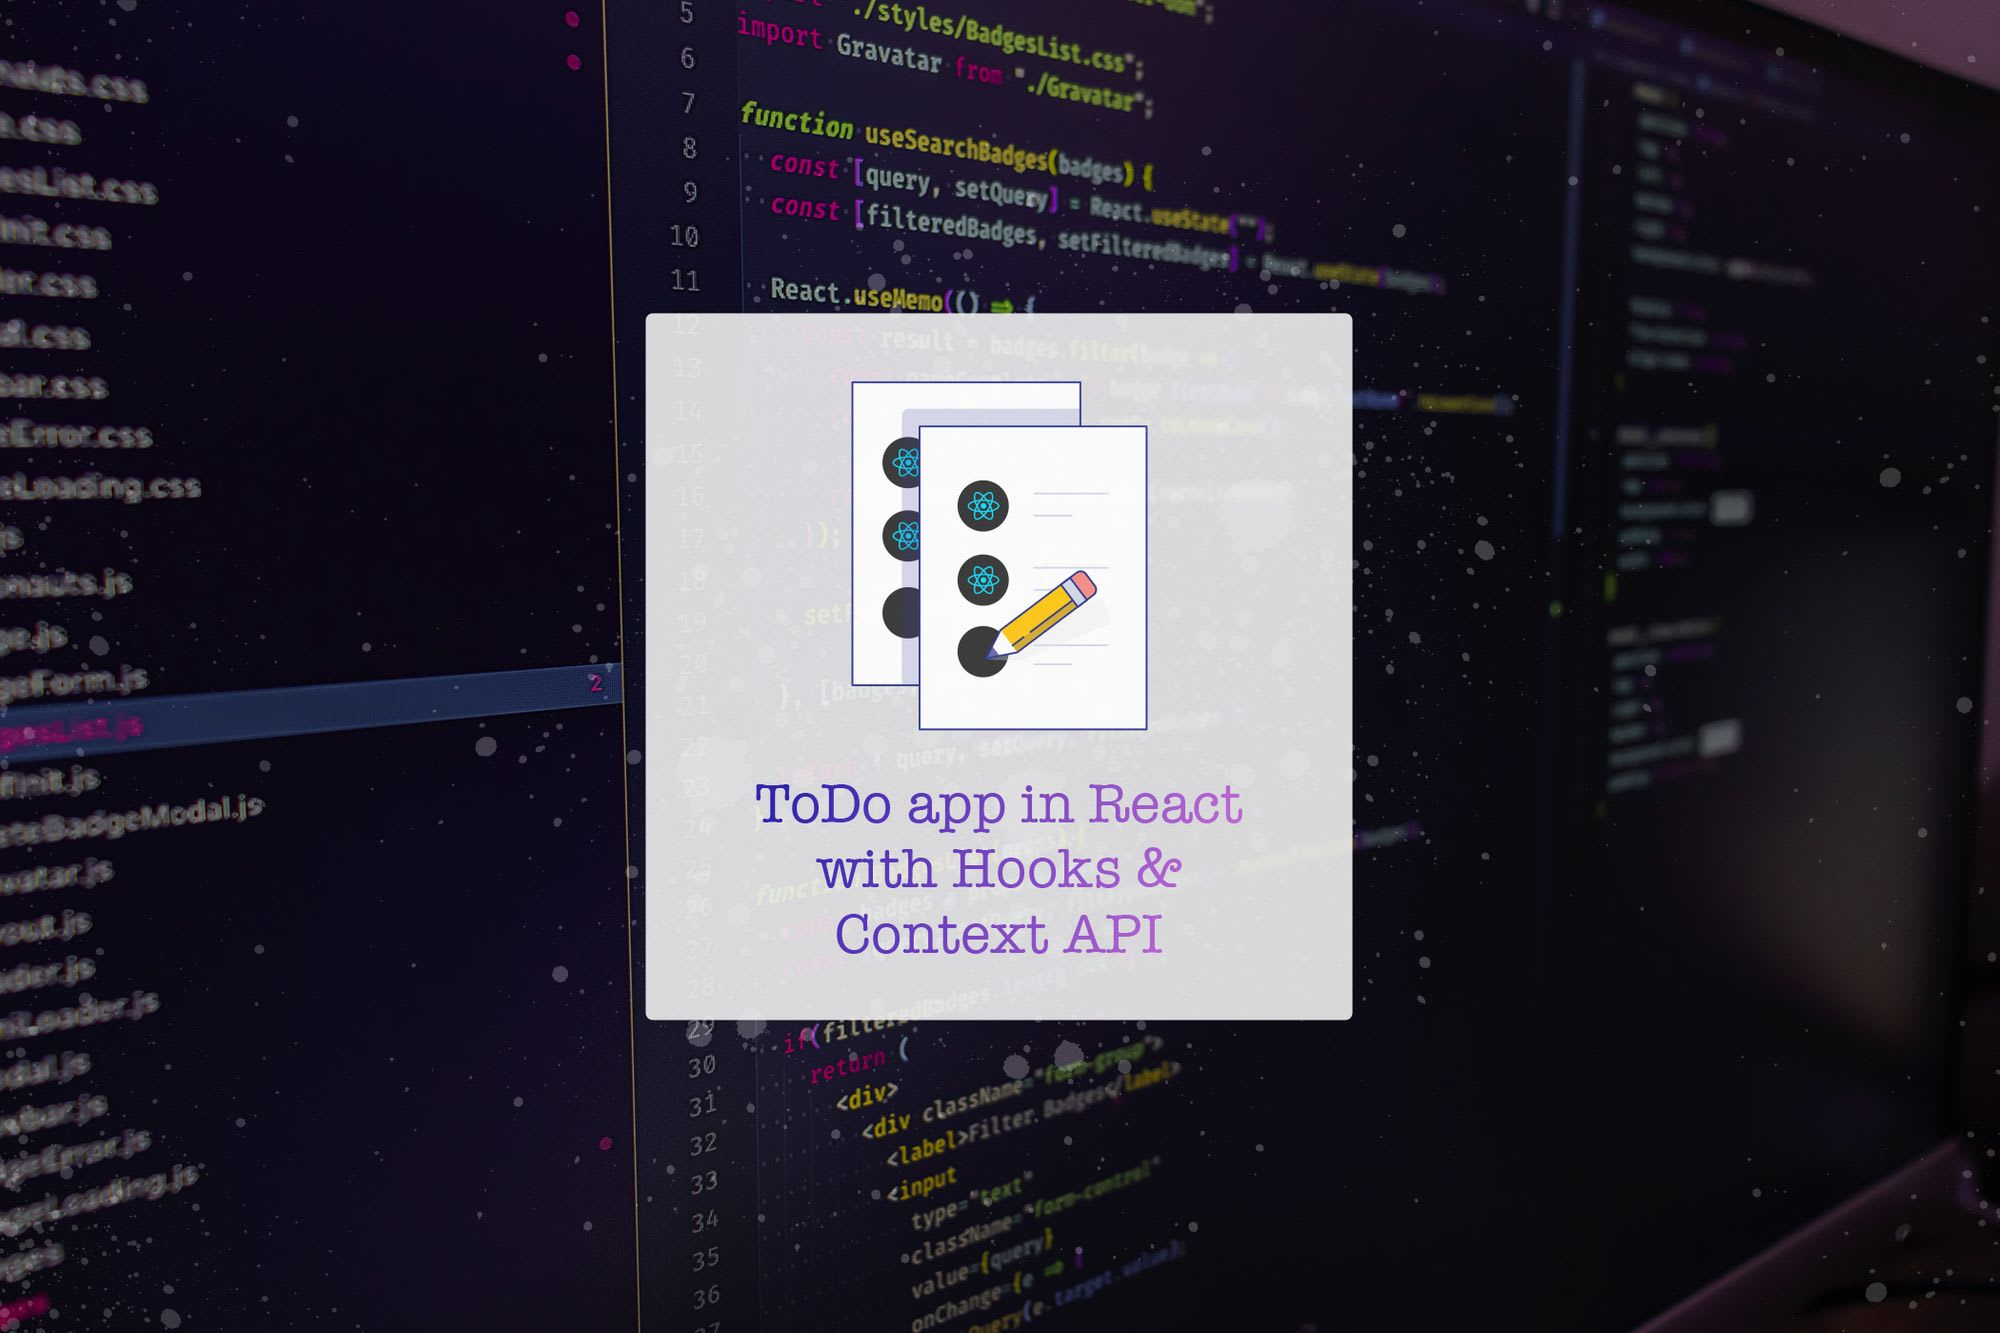 ToDo app in ReactJS with Hooks & Context API